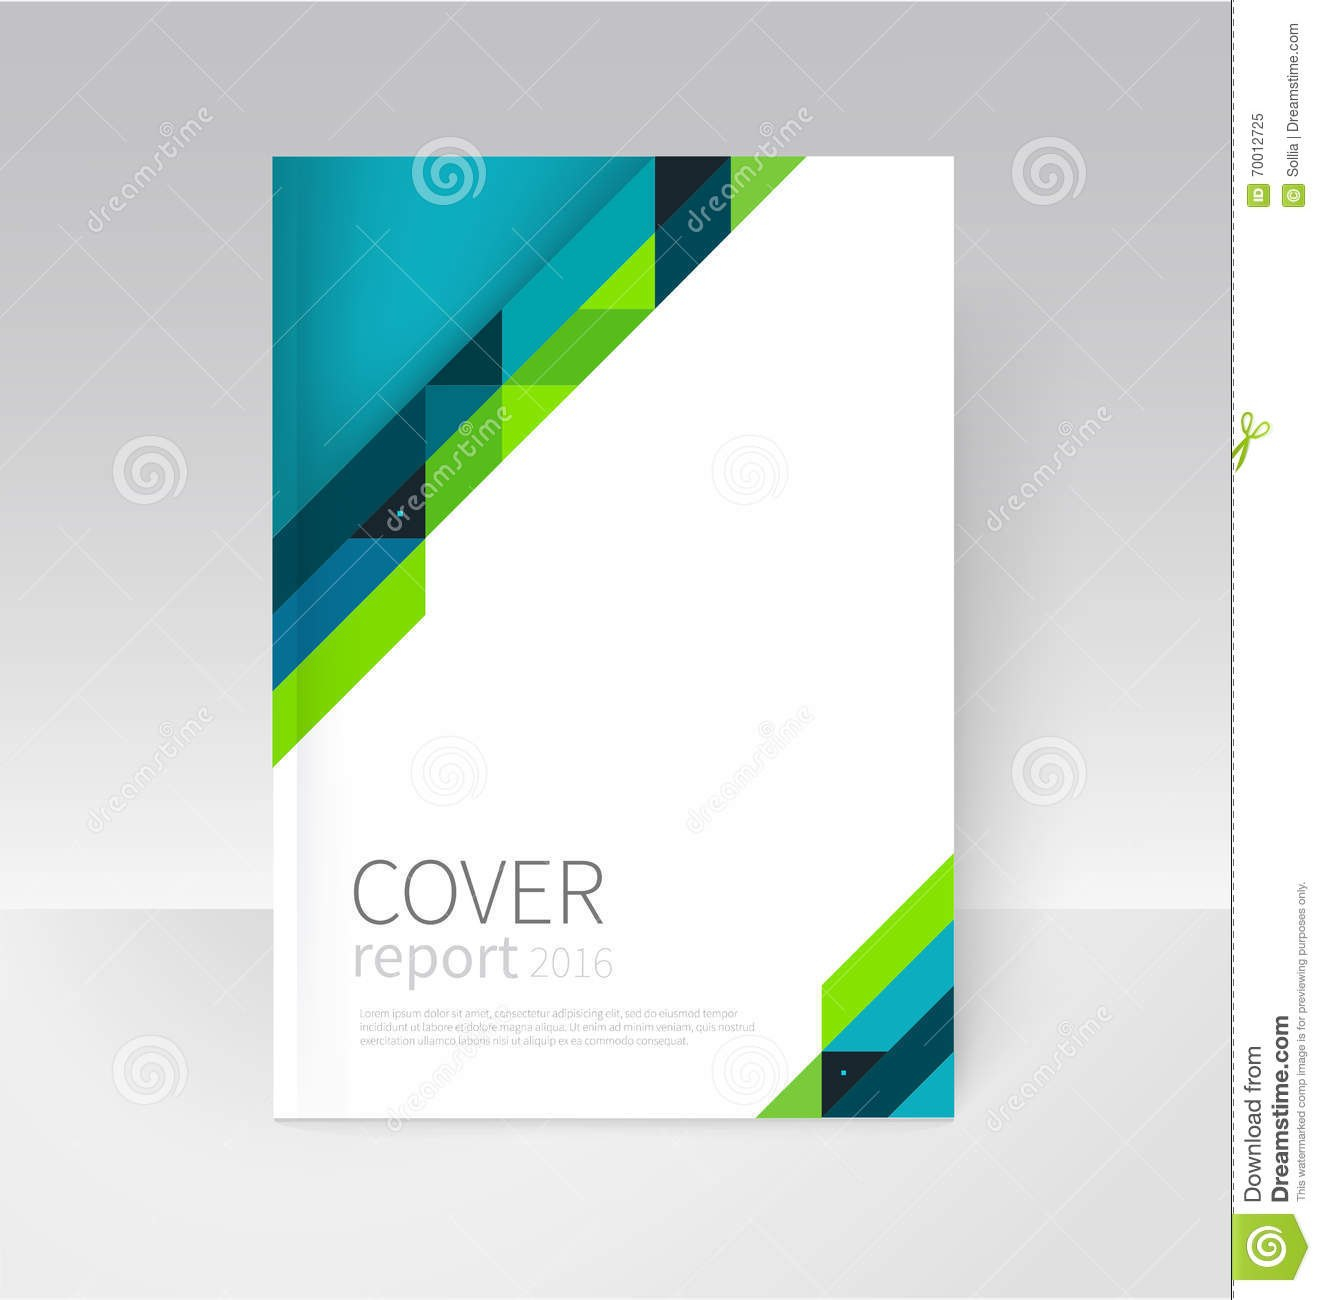 Microsoft Word Cover Pages Templates Brochure Flyer Poster With Cover Page Of Report Template In Word